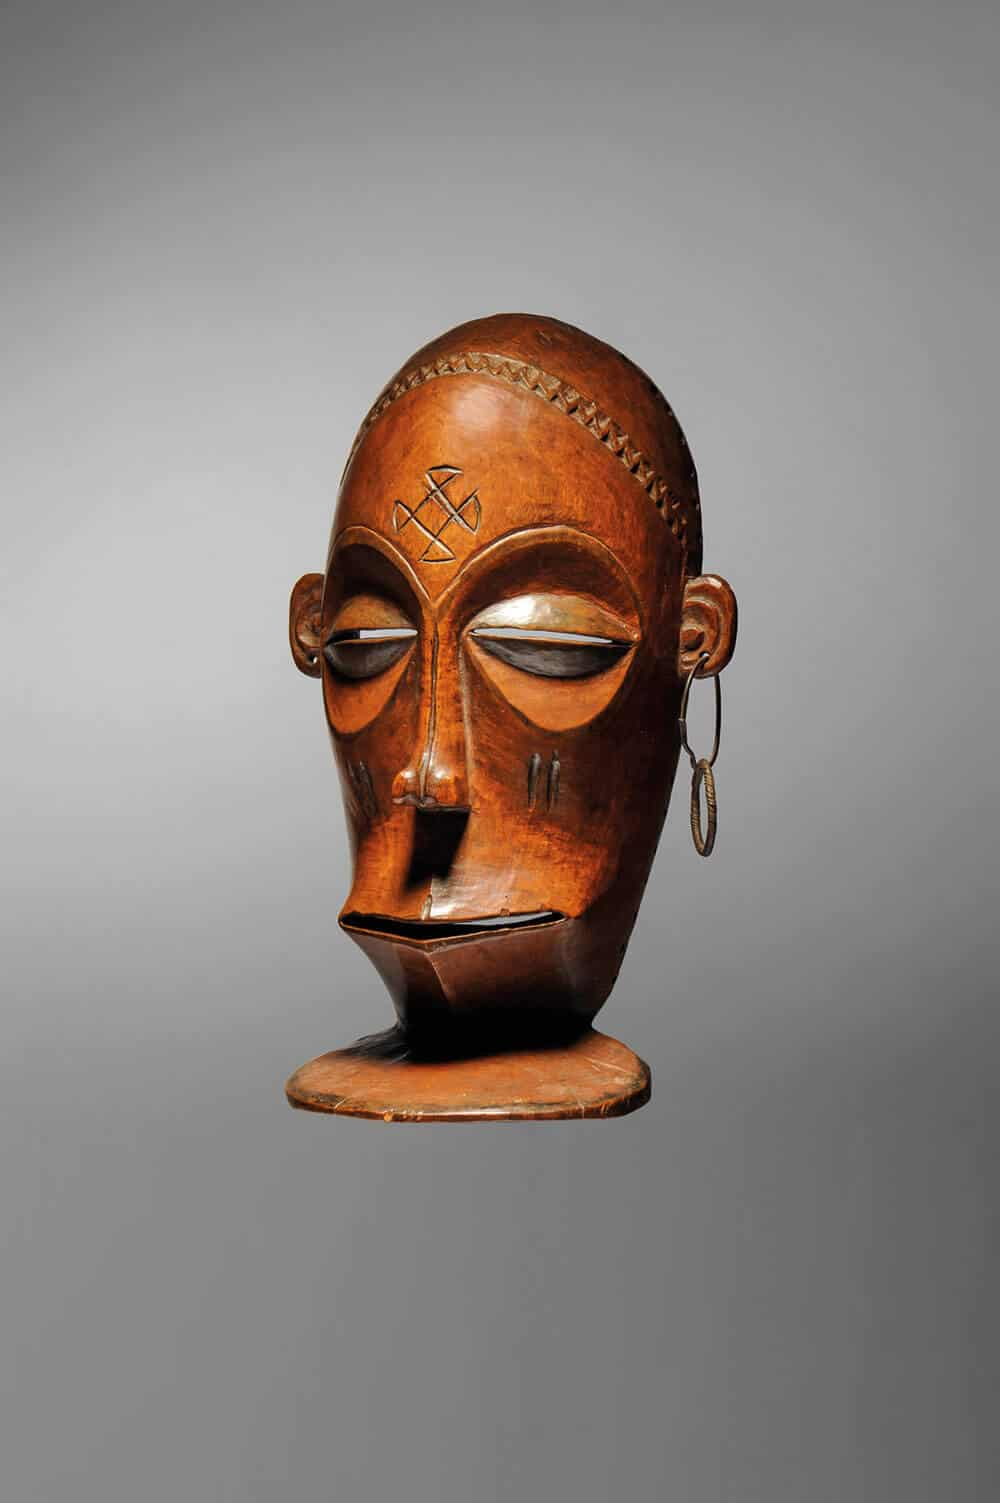 Shinji Mask Cihongo. Tchiuta Chiefdom, Camaxilo region. Wood, metal. Height: 25.5cm; length: 15cm. © Native, Brussels.